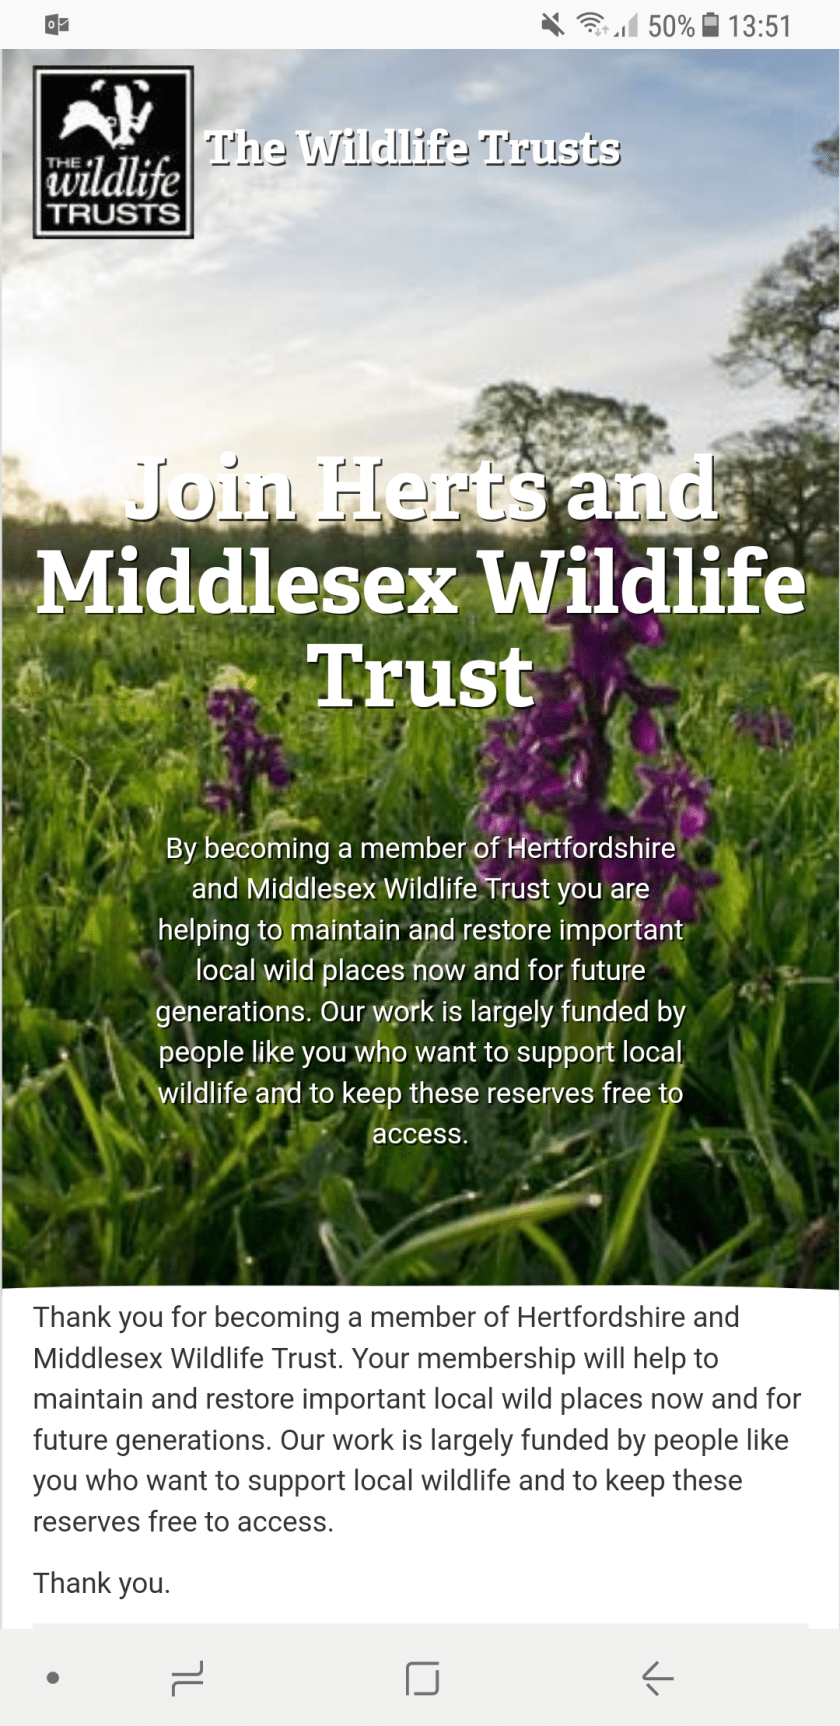 The Wildlife Trusts, Hertfordshire, 30 Days Wild, #StayWild, #LivingLifeWild, membership, wildlife, nature